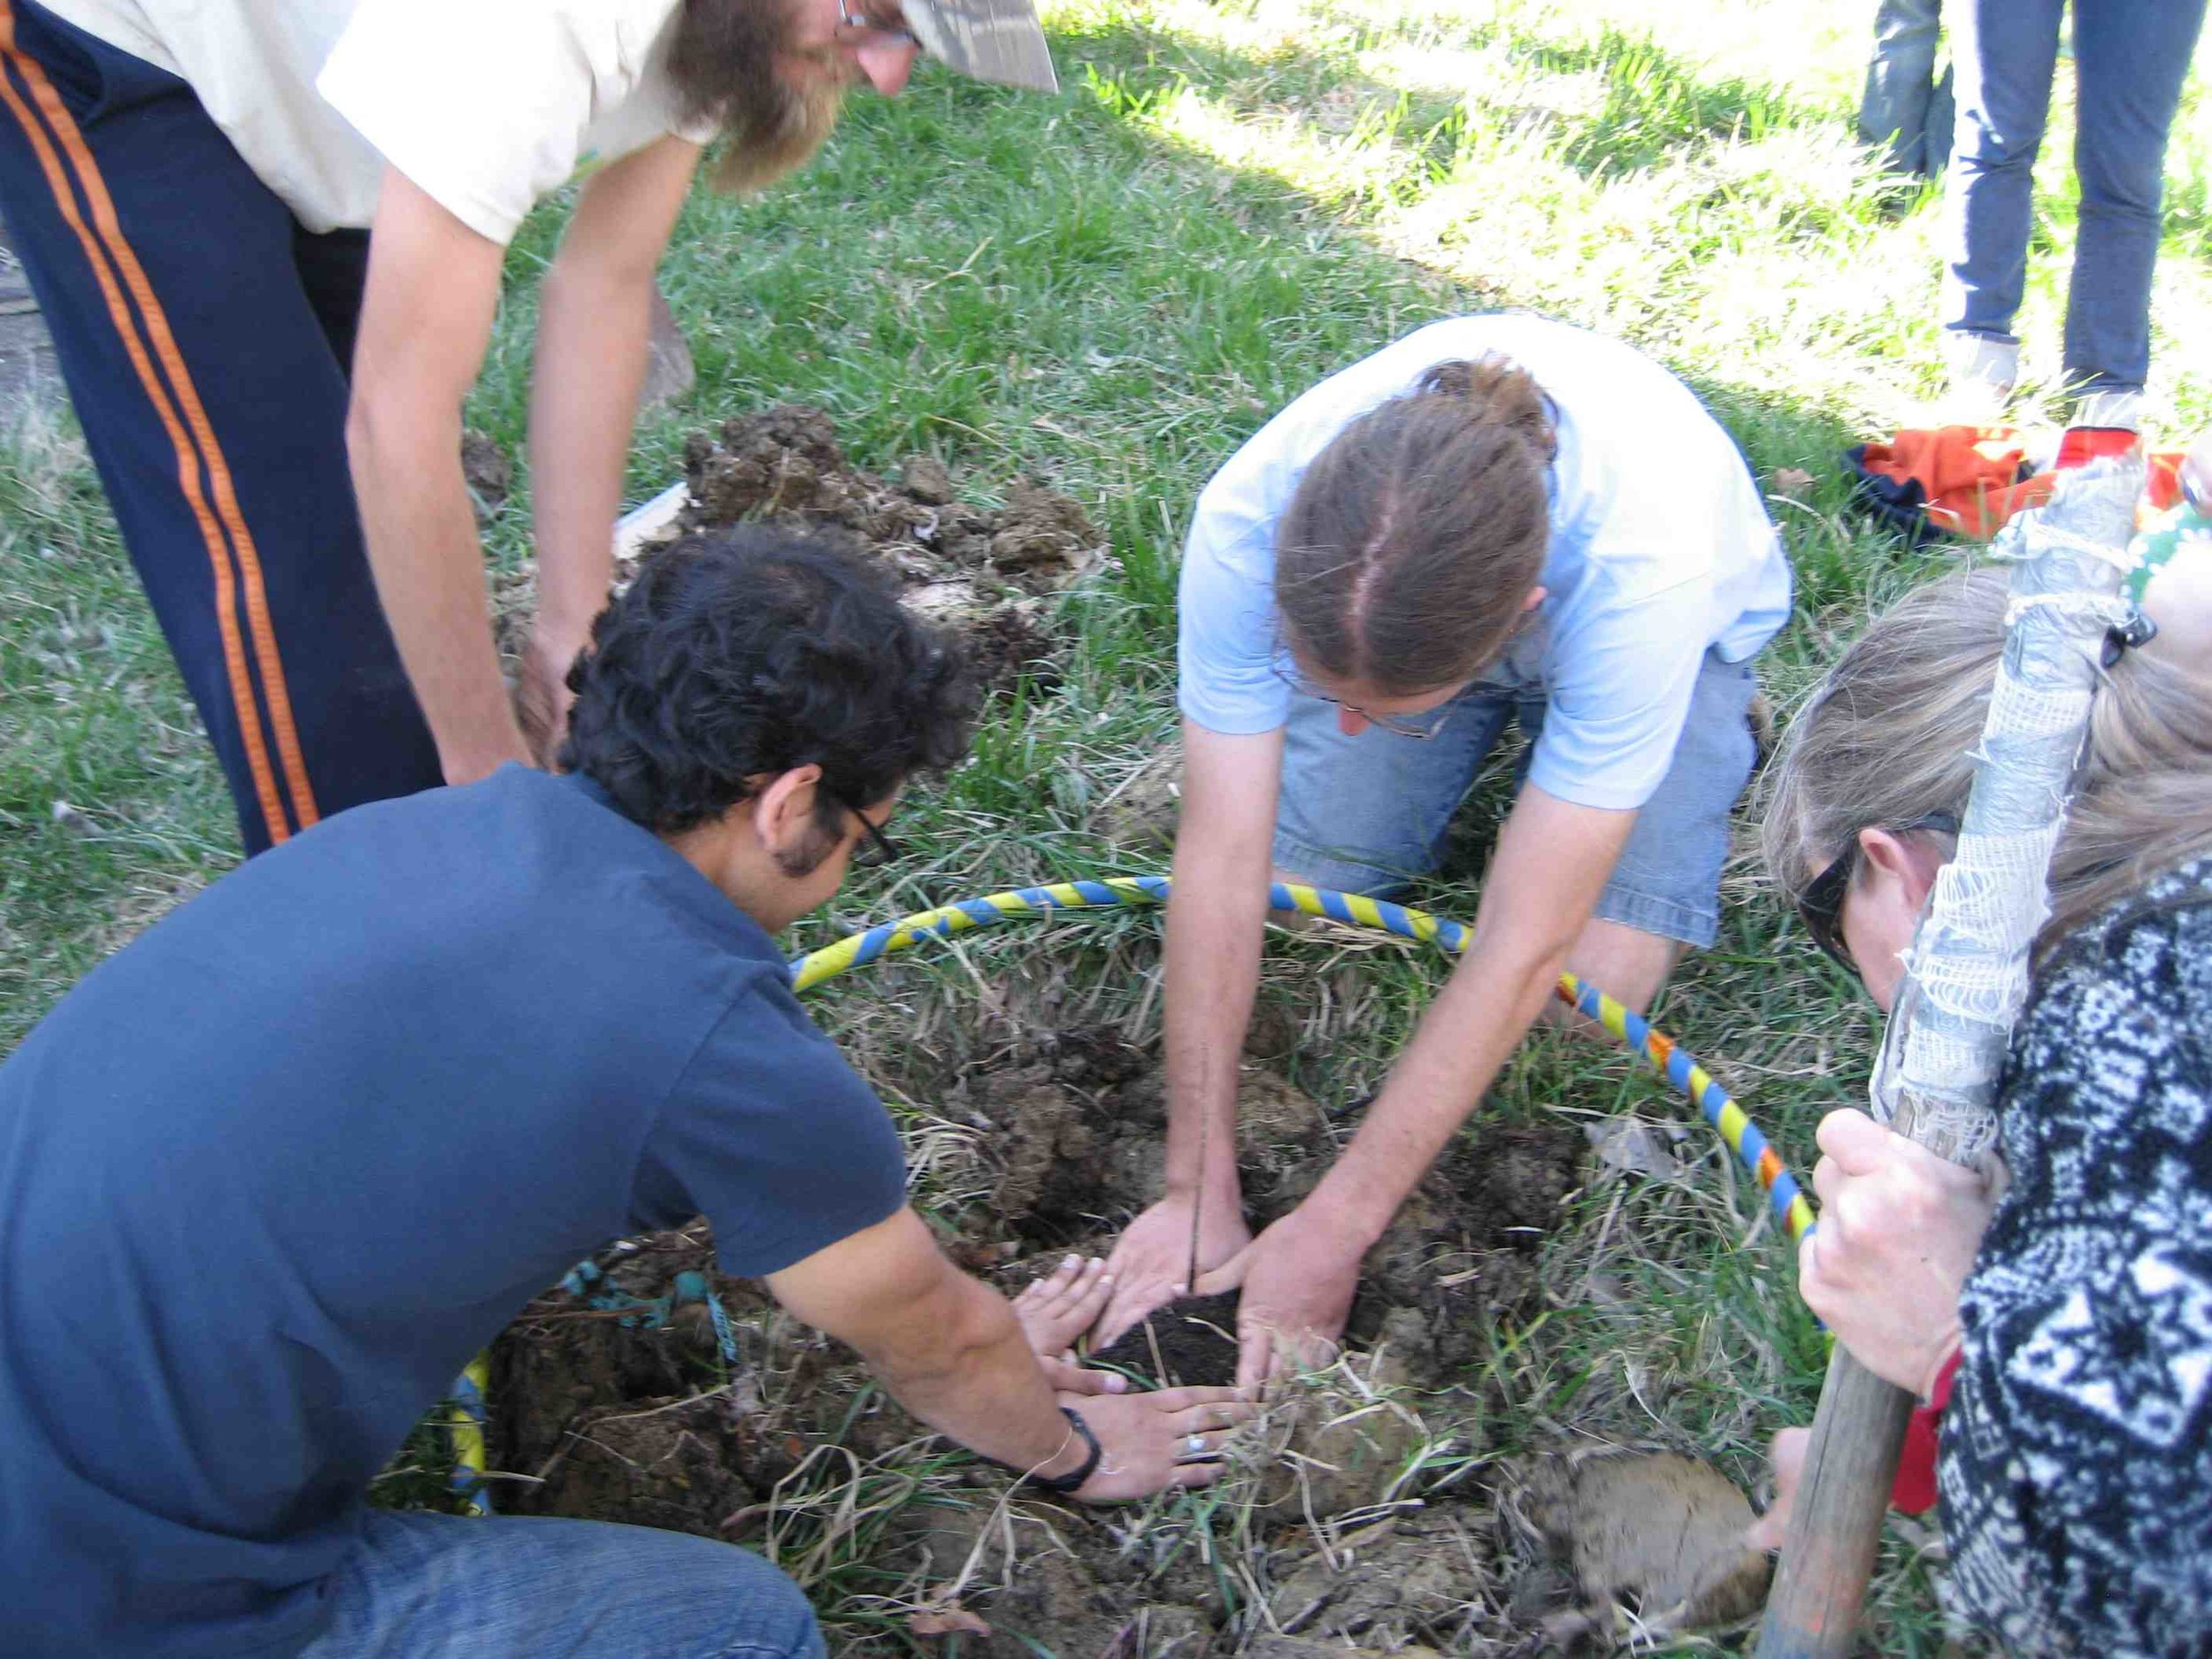 Planting a Northern Pecan for the class tree